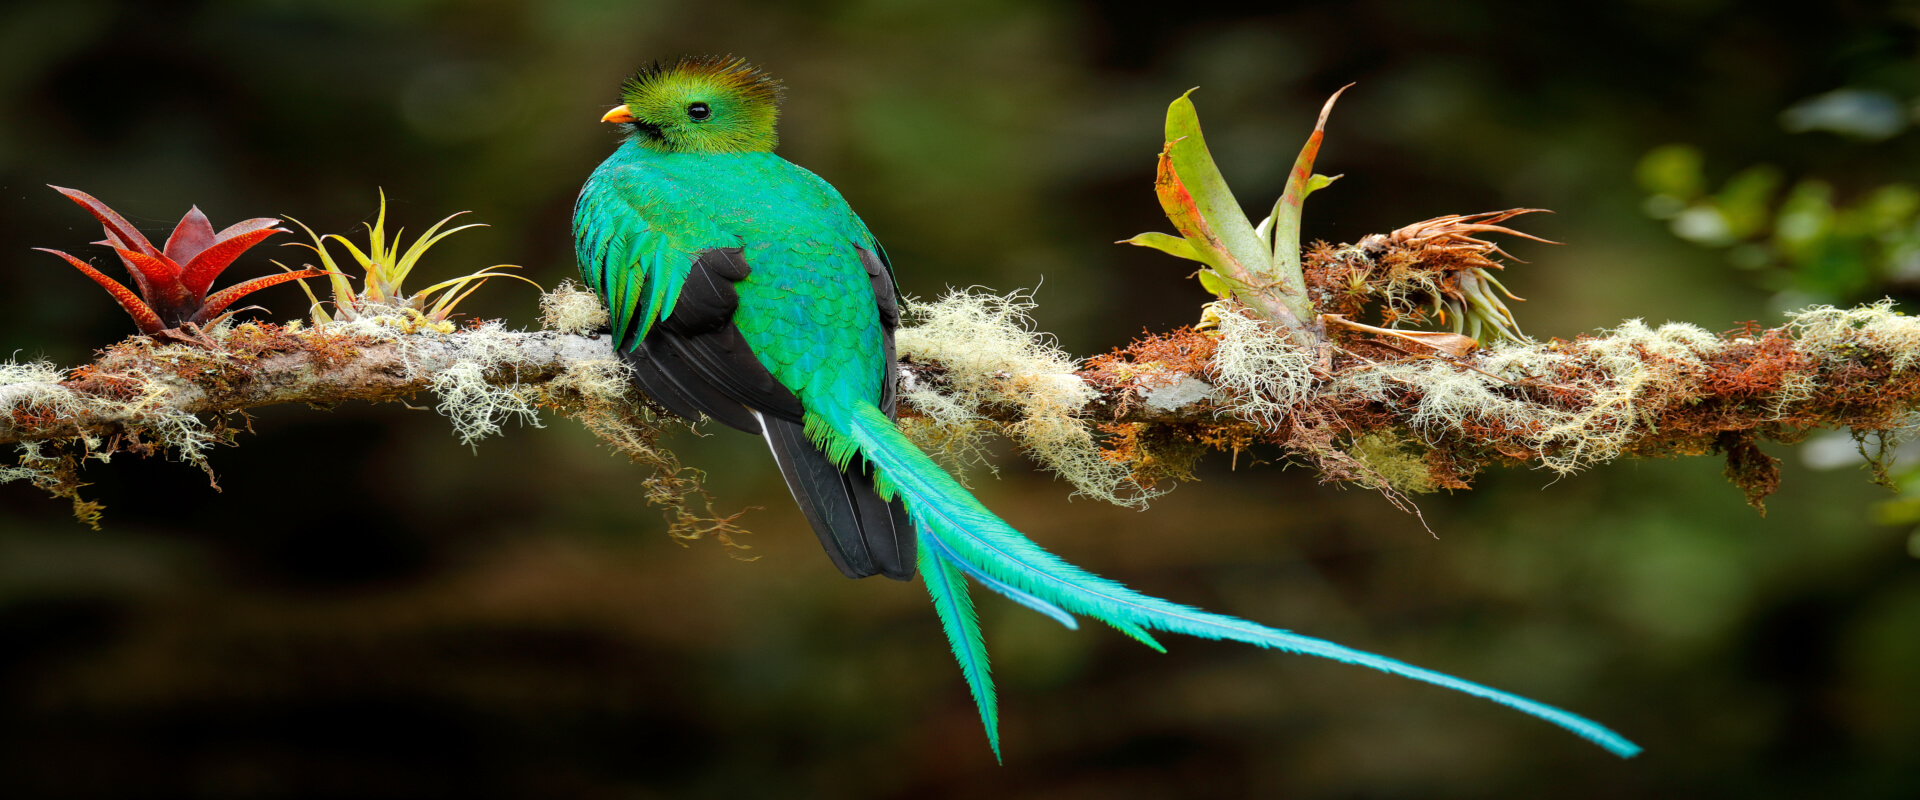 Curicancha Birdwatching Private Tour | Costa Rica Jade Tours